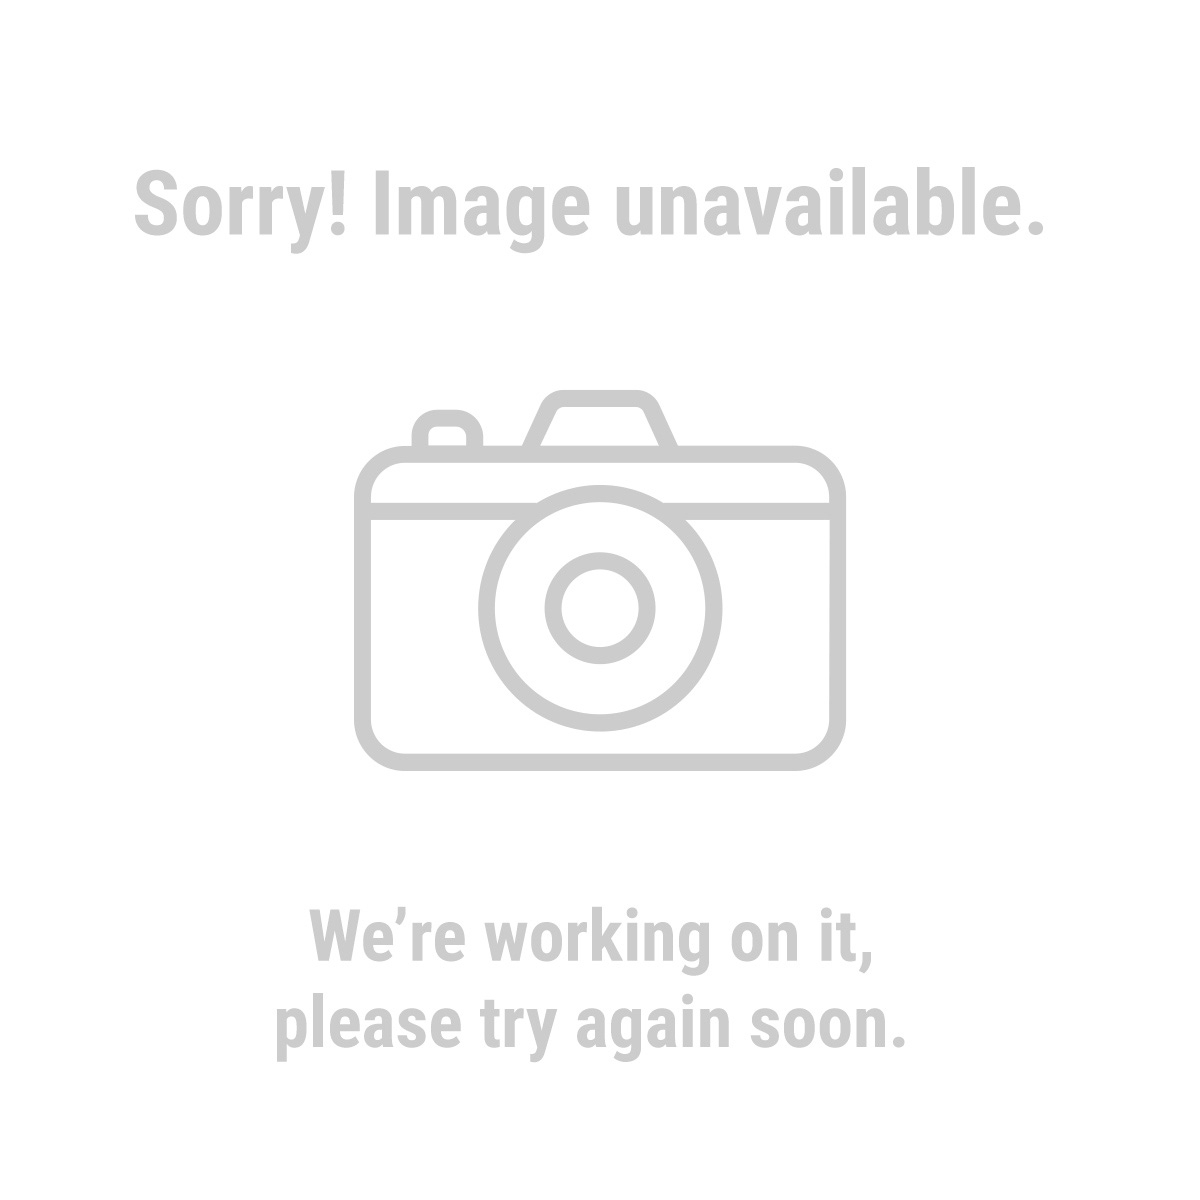 Bike Racks For Receiver Bike Hitch Mount Bike Rack